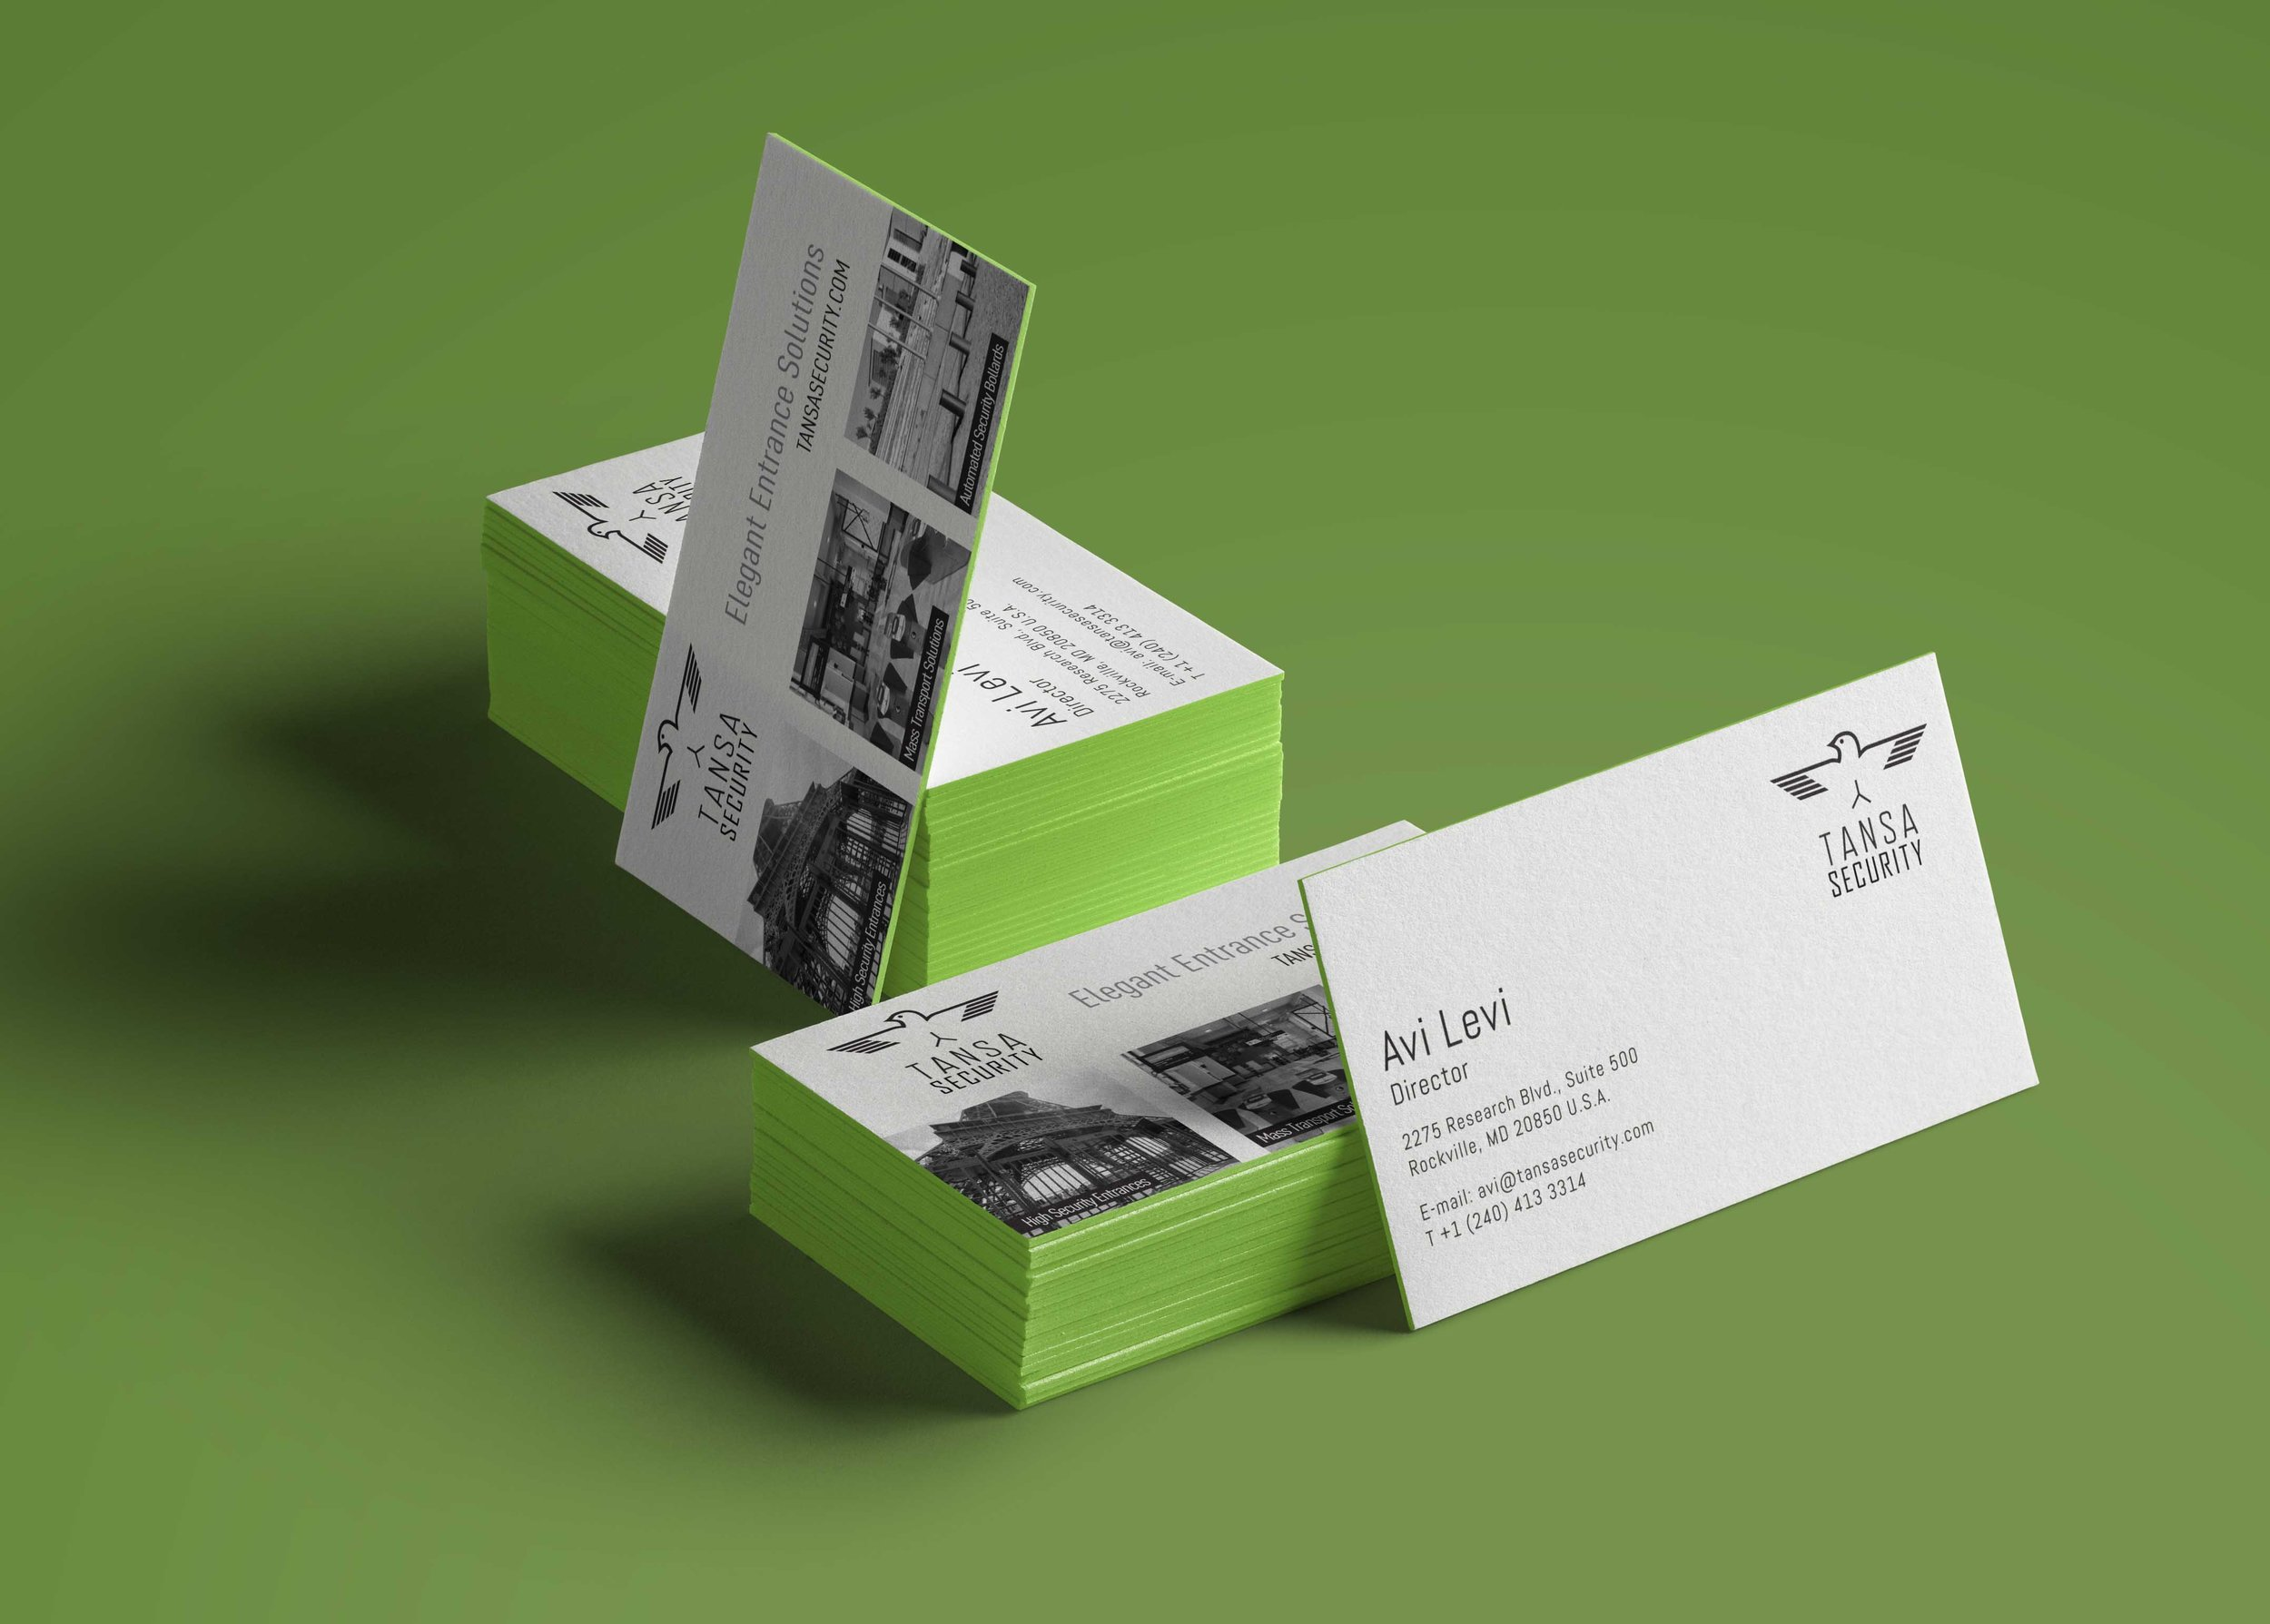 Tansa Security Business Cards